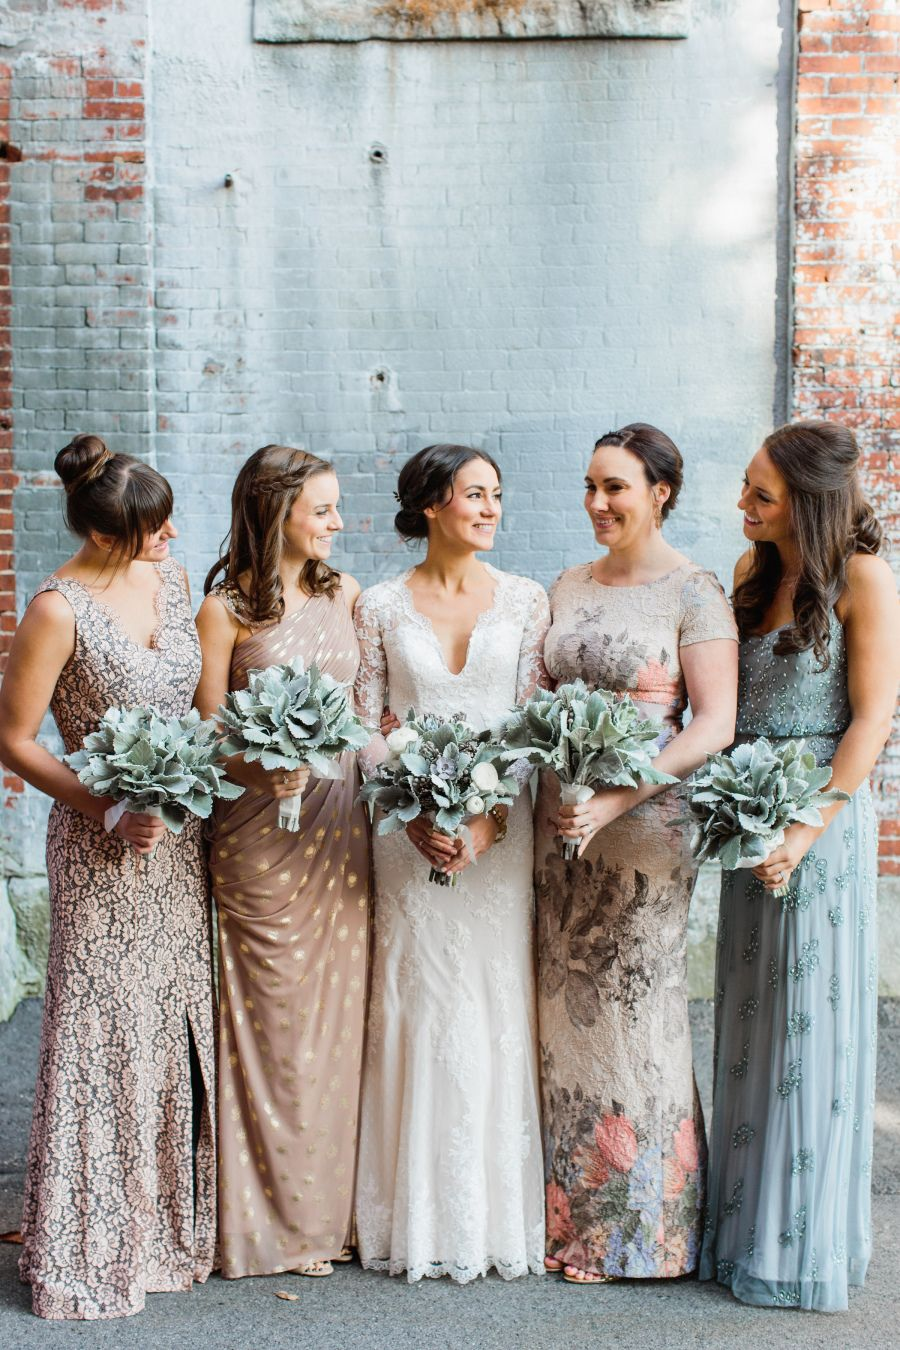 Industrial Chic Meets Boho Beauty for this Fall New England Wedding ...